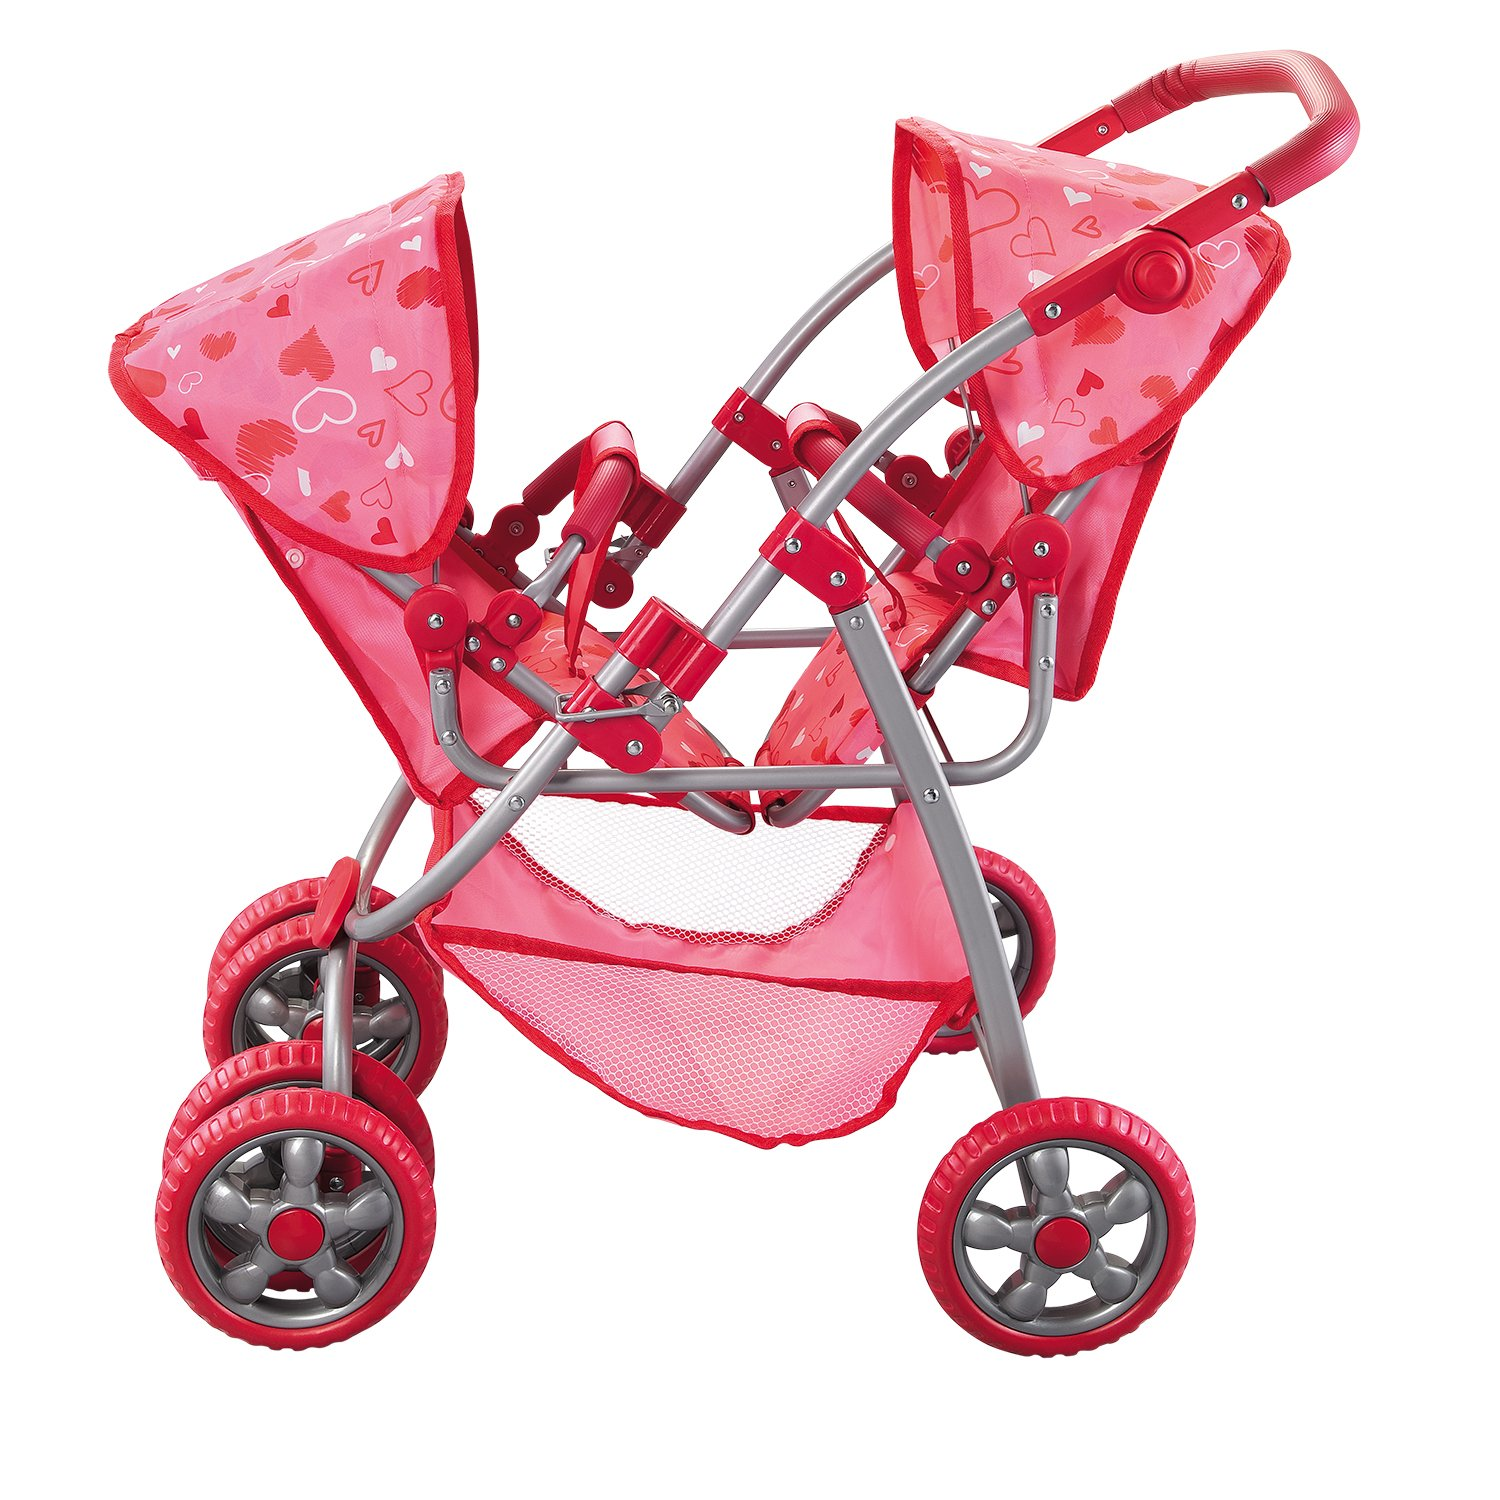 Deluxe Doll Twin Stroller Set - Mega Twin Doll Stroller for Twin Dolls - Fits 18 inch Dolls - Great Holiday Gift